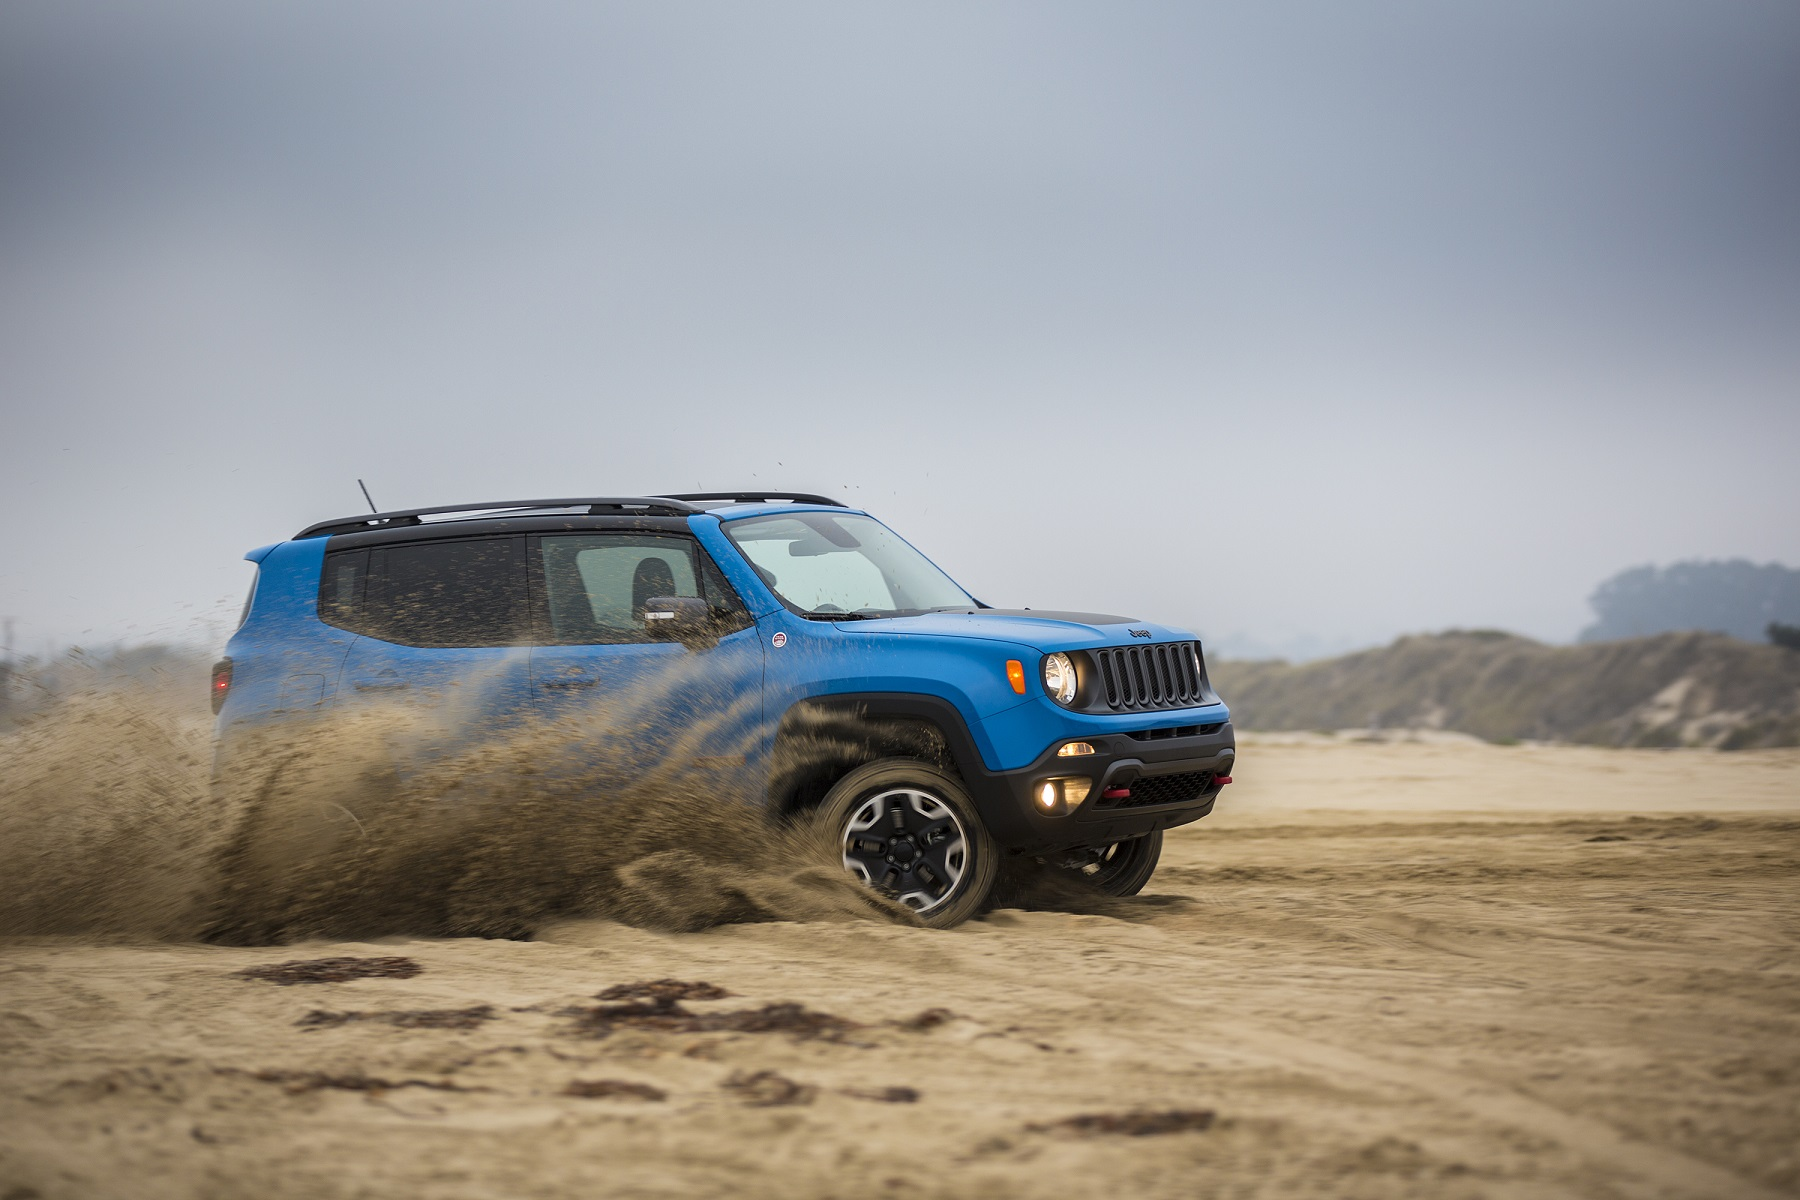 Manufacturer photo: The 2015 Renegade offers the open-air freedom and iconic styling Jeep is known for in an all-new efficient, trail and urban-friendly size -- designed to take the growing global small SUV segment head-on with its beefy proportions and purposeful design elements